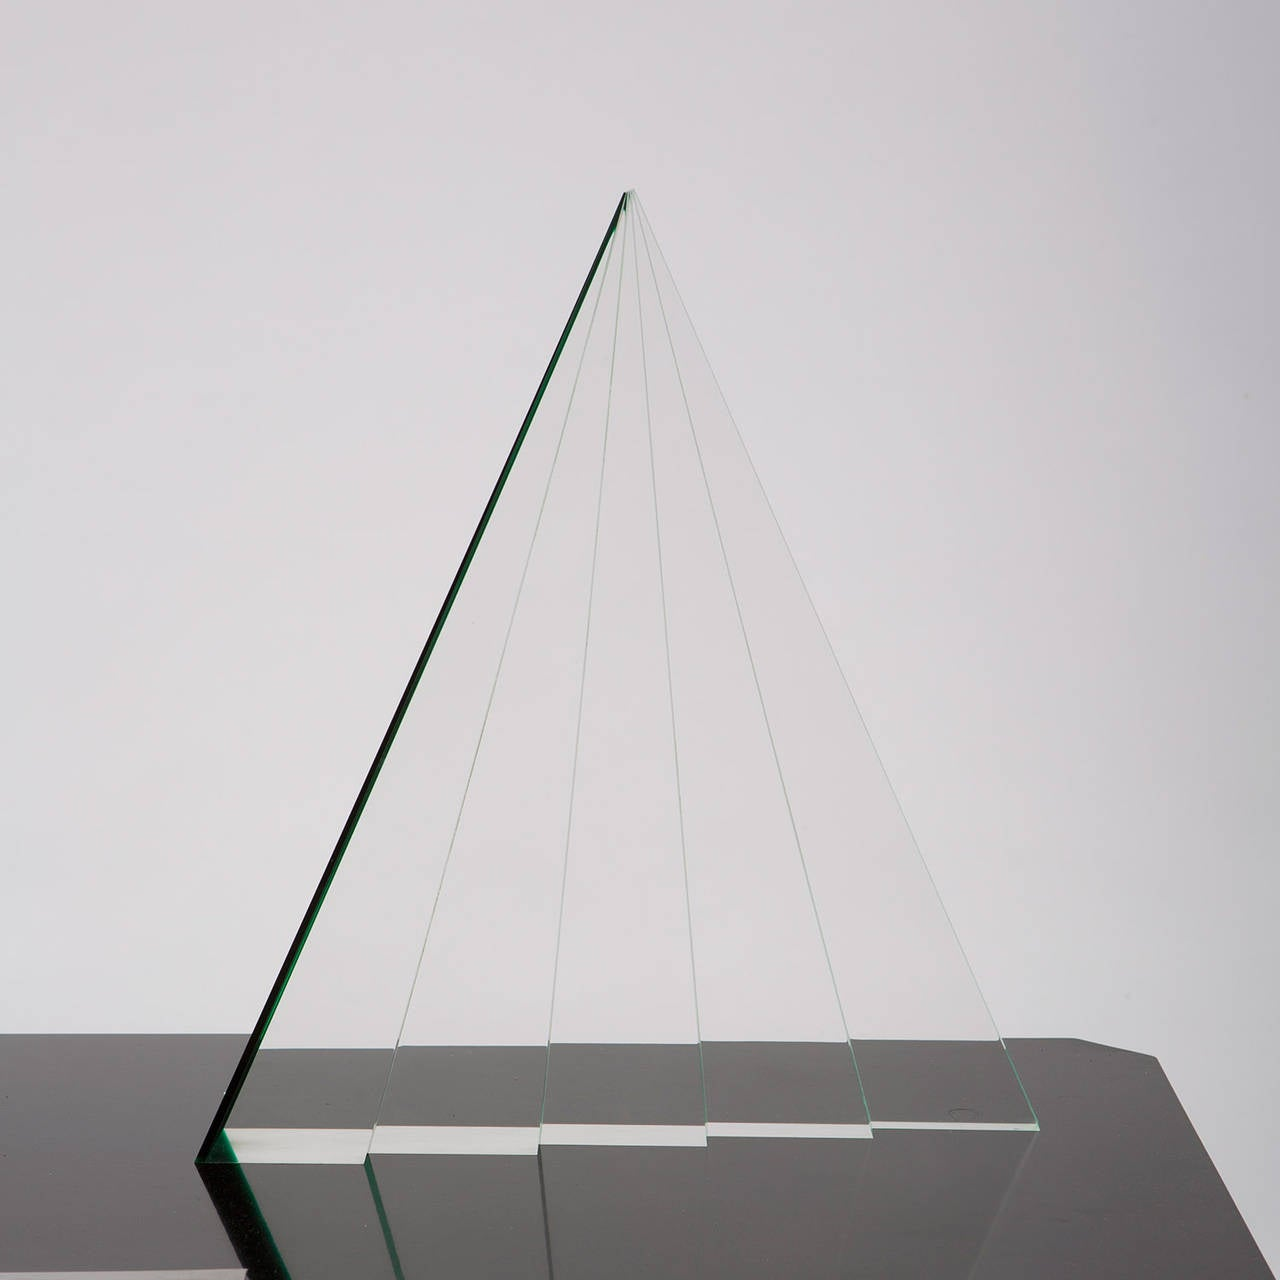 Plexiglas sculpture by Luca Bonato for Fusina. The piece, visually composed by five triangular layers, fully represent the beauty of the material that can be underlined or totally disappear turning the piece. The massive plexiglas piece is signed